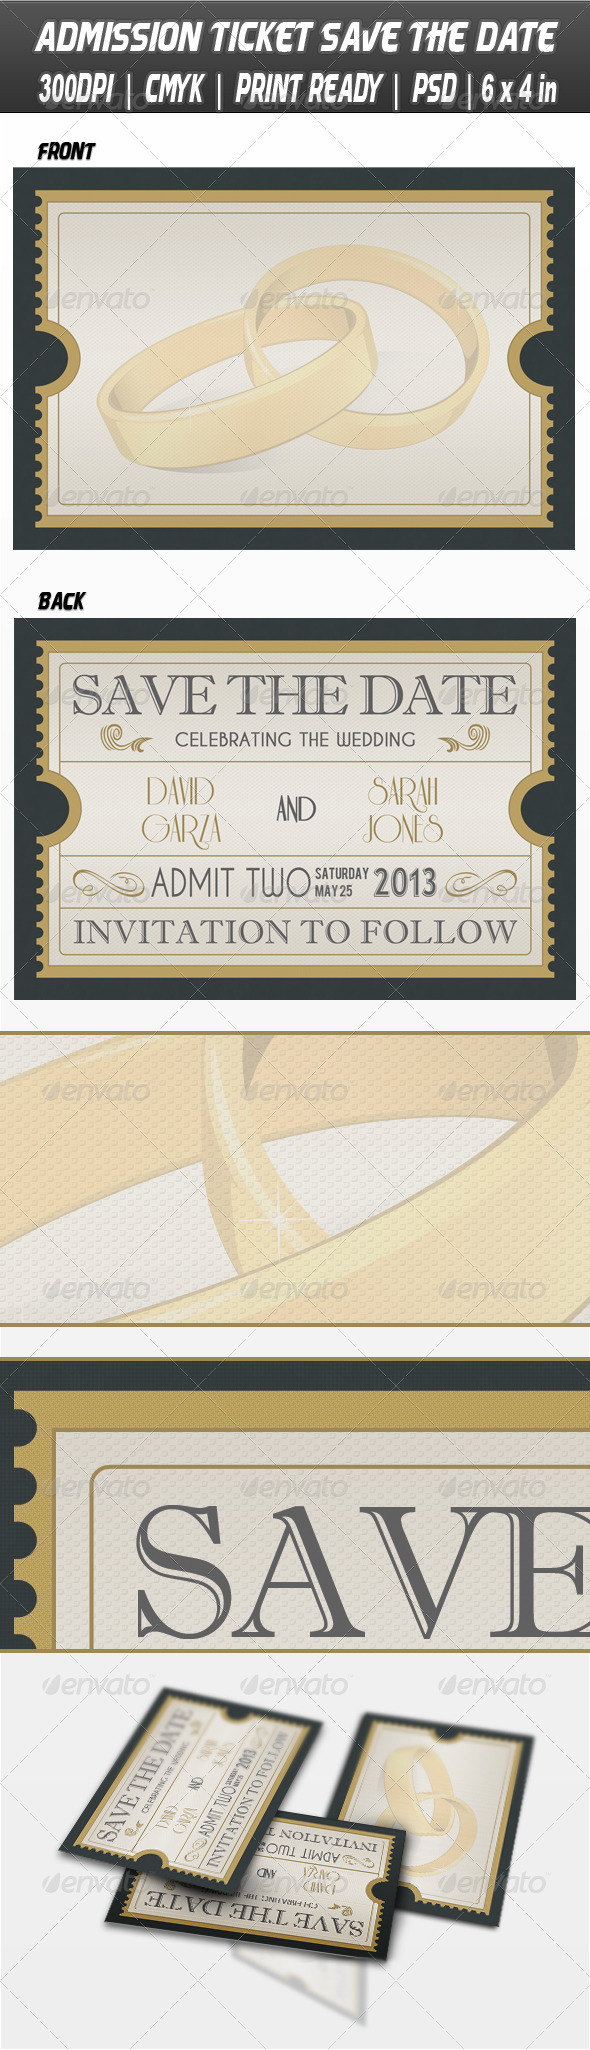 GraphicRiver Admission Ticket Save The Date 3841754